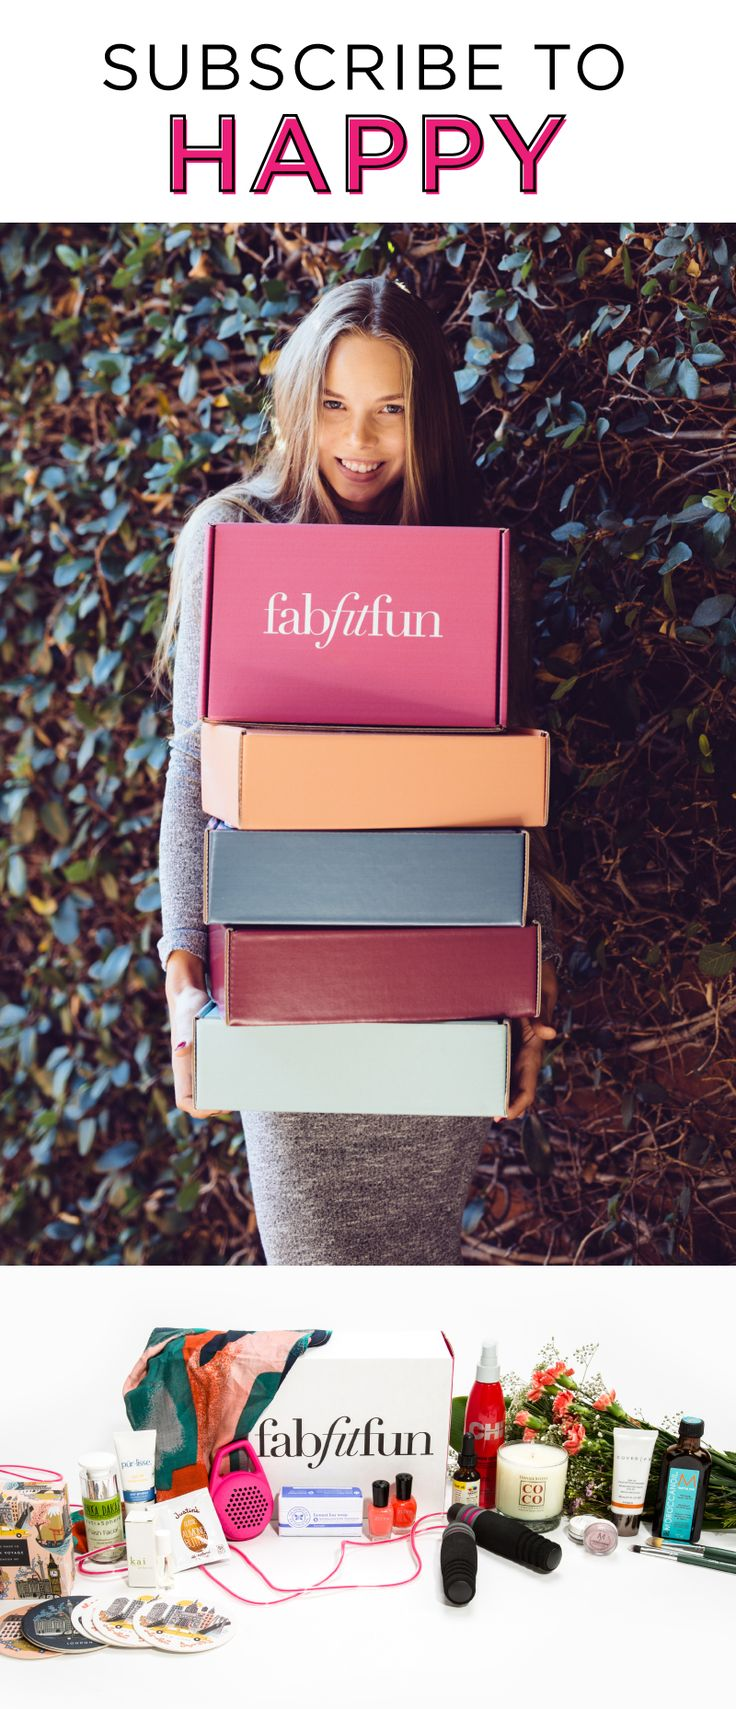 Try out FabFitFun today and see why we're the #1 full-size box. Each box includes the best full-size, premium beauty, fashion, and fitness products curated for each season. Use code LEAVES to get your first box for just $39.99! That's $200+ of glam goodies for  80% off!